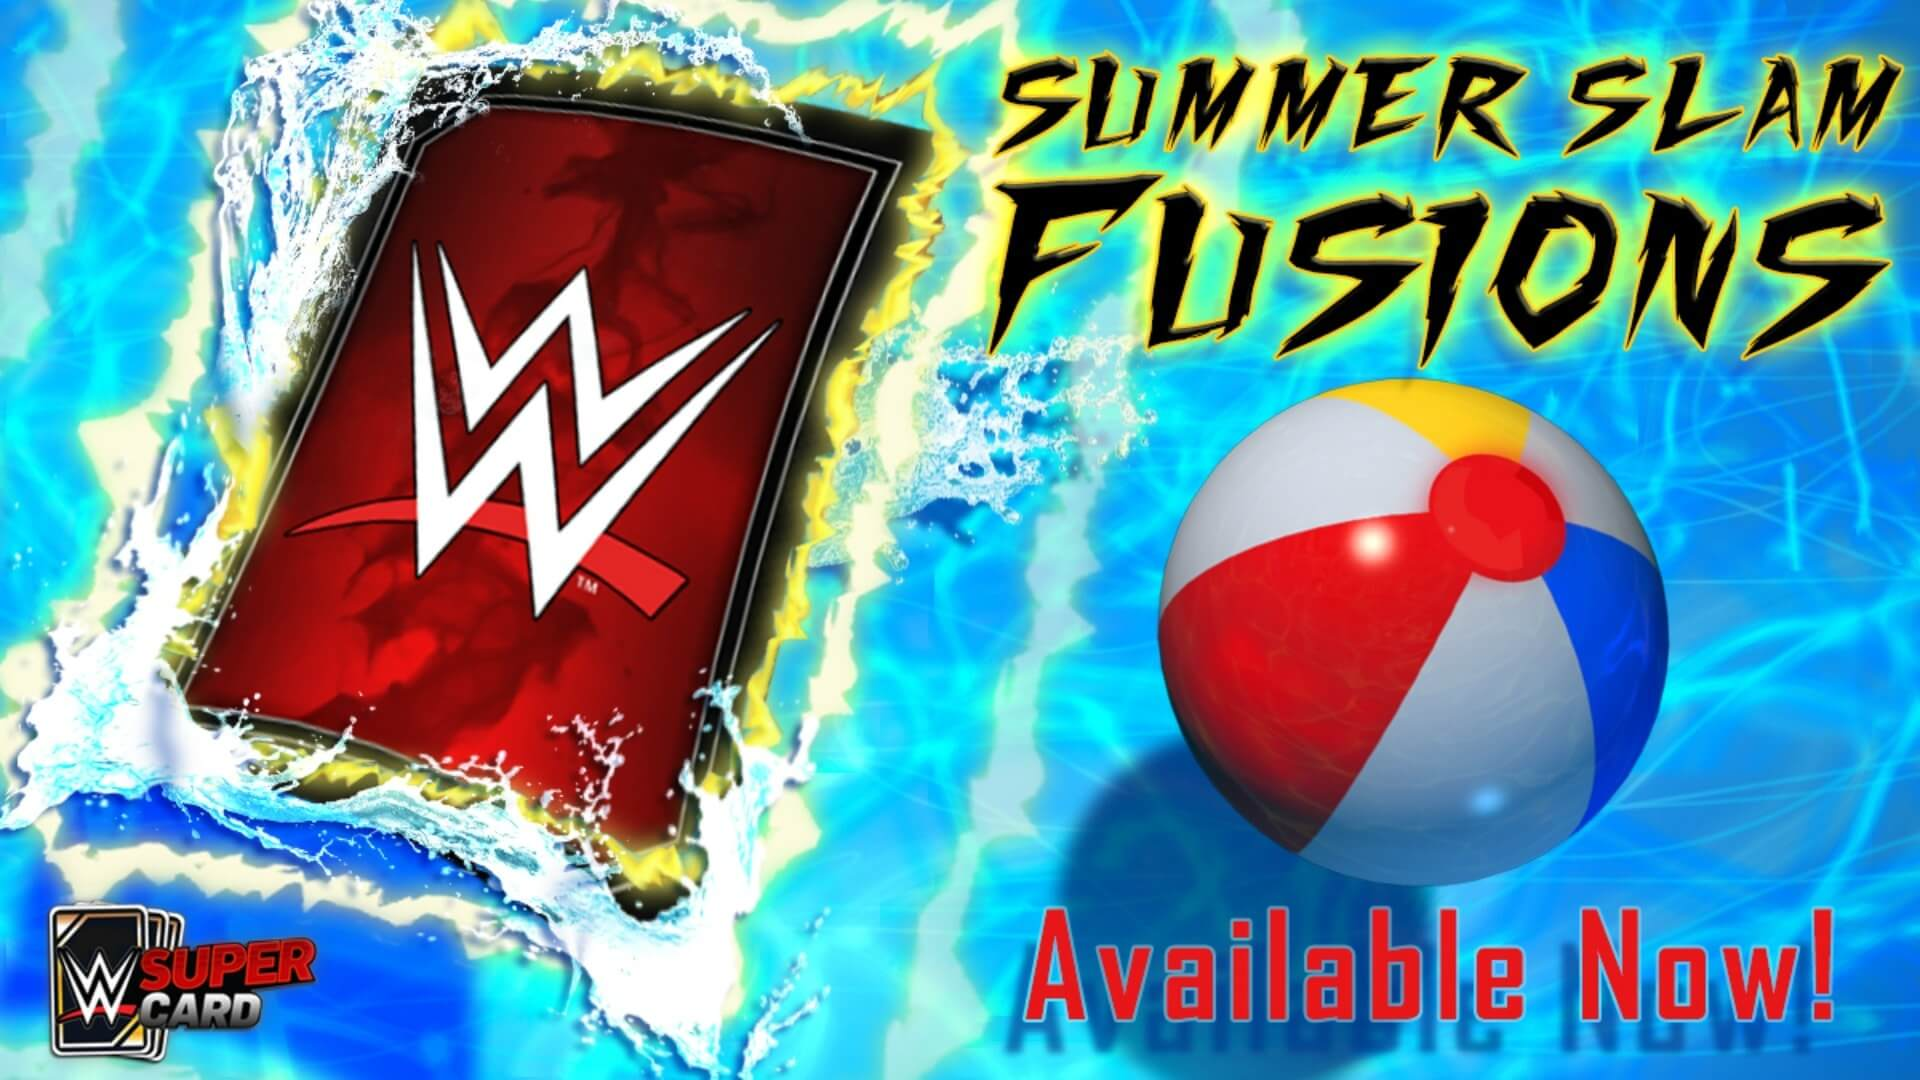 FR-WWE Supercard Summerslam Fusio